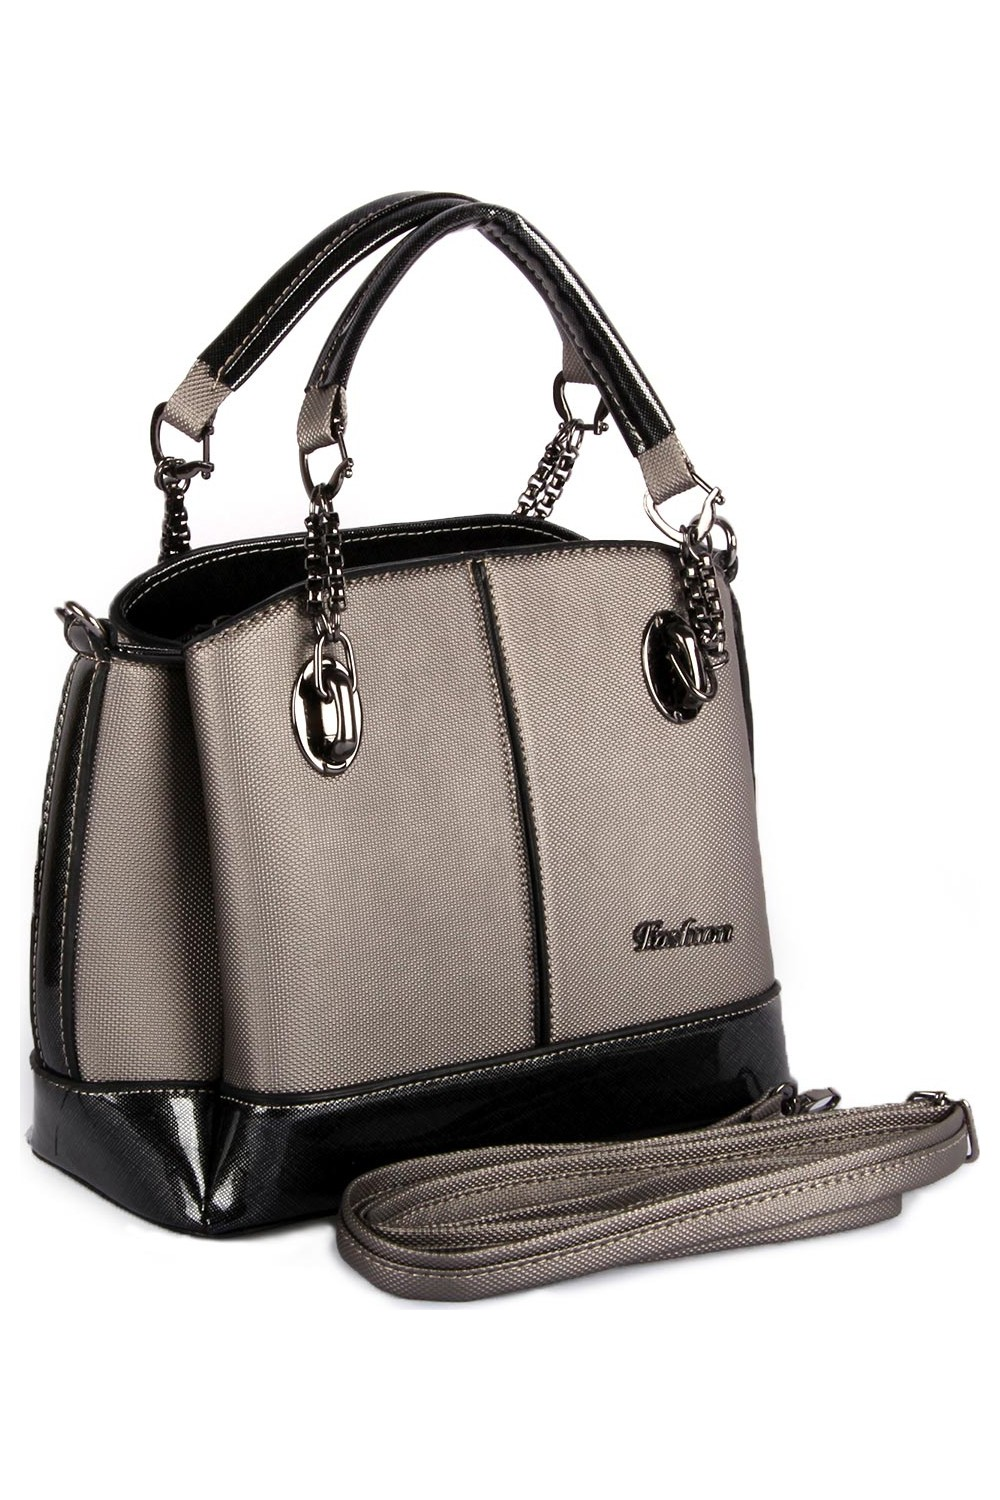 Bay Pablo Women's Handbag C610